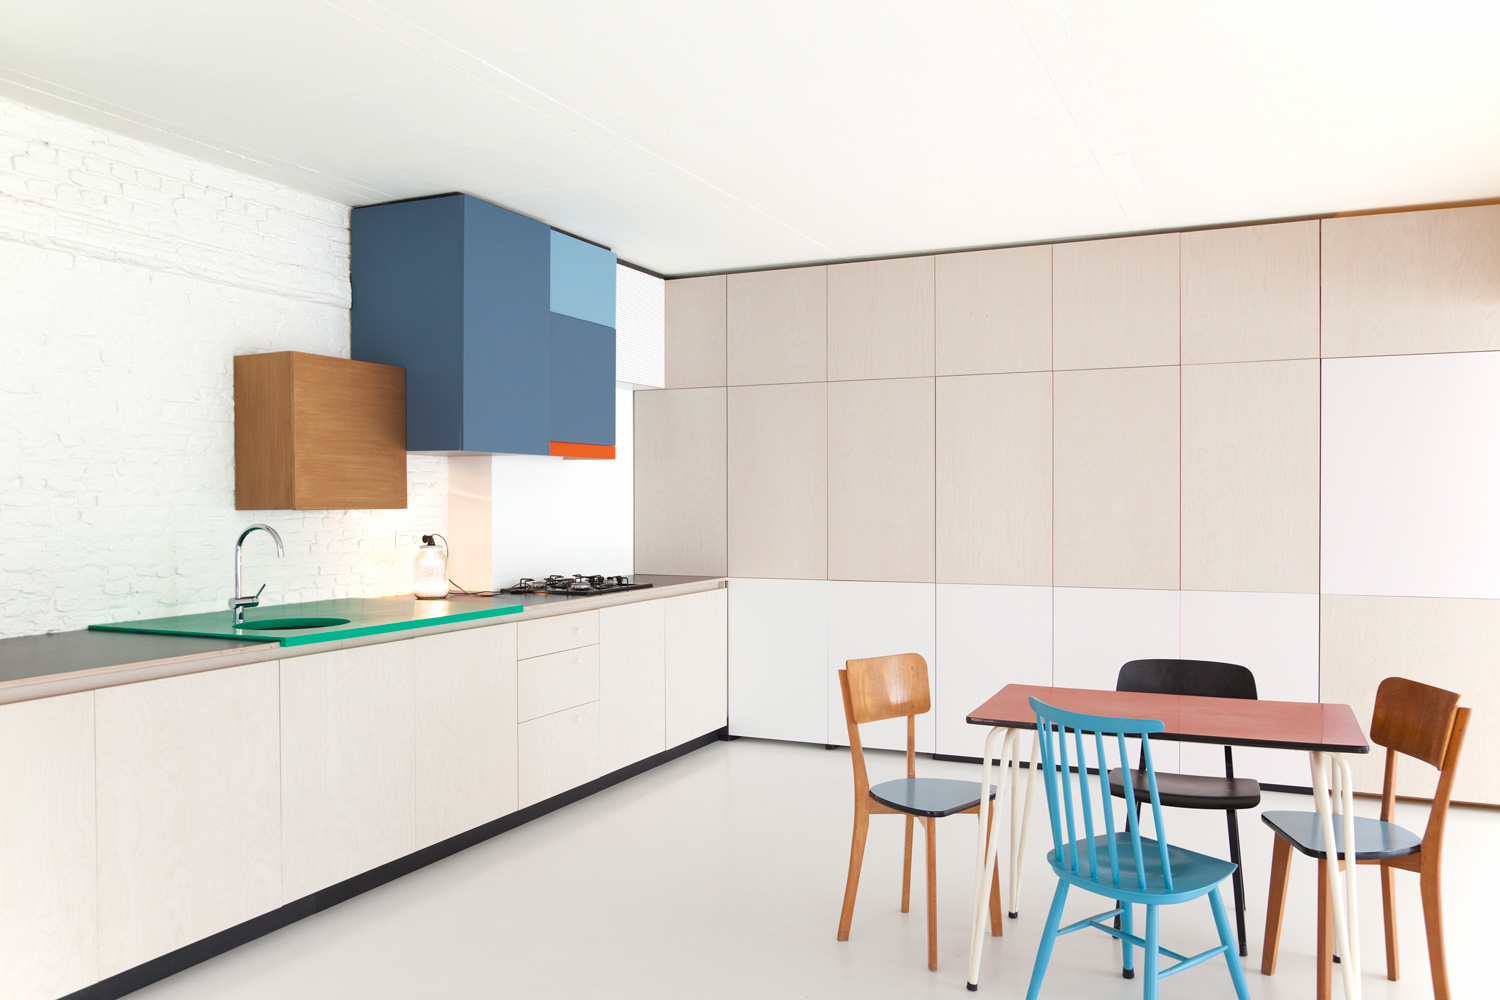 colorful kitchen by belgian designer dries otten 2 Colorful Kitchen By Belgian Designer Dries Otten